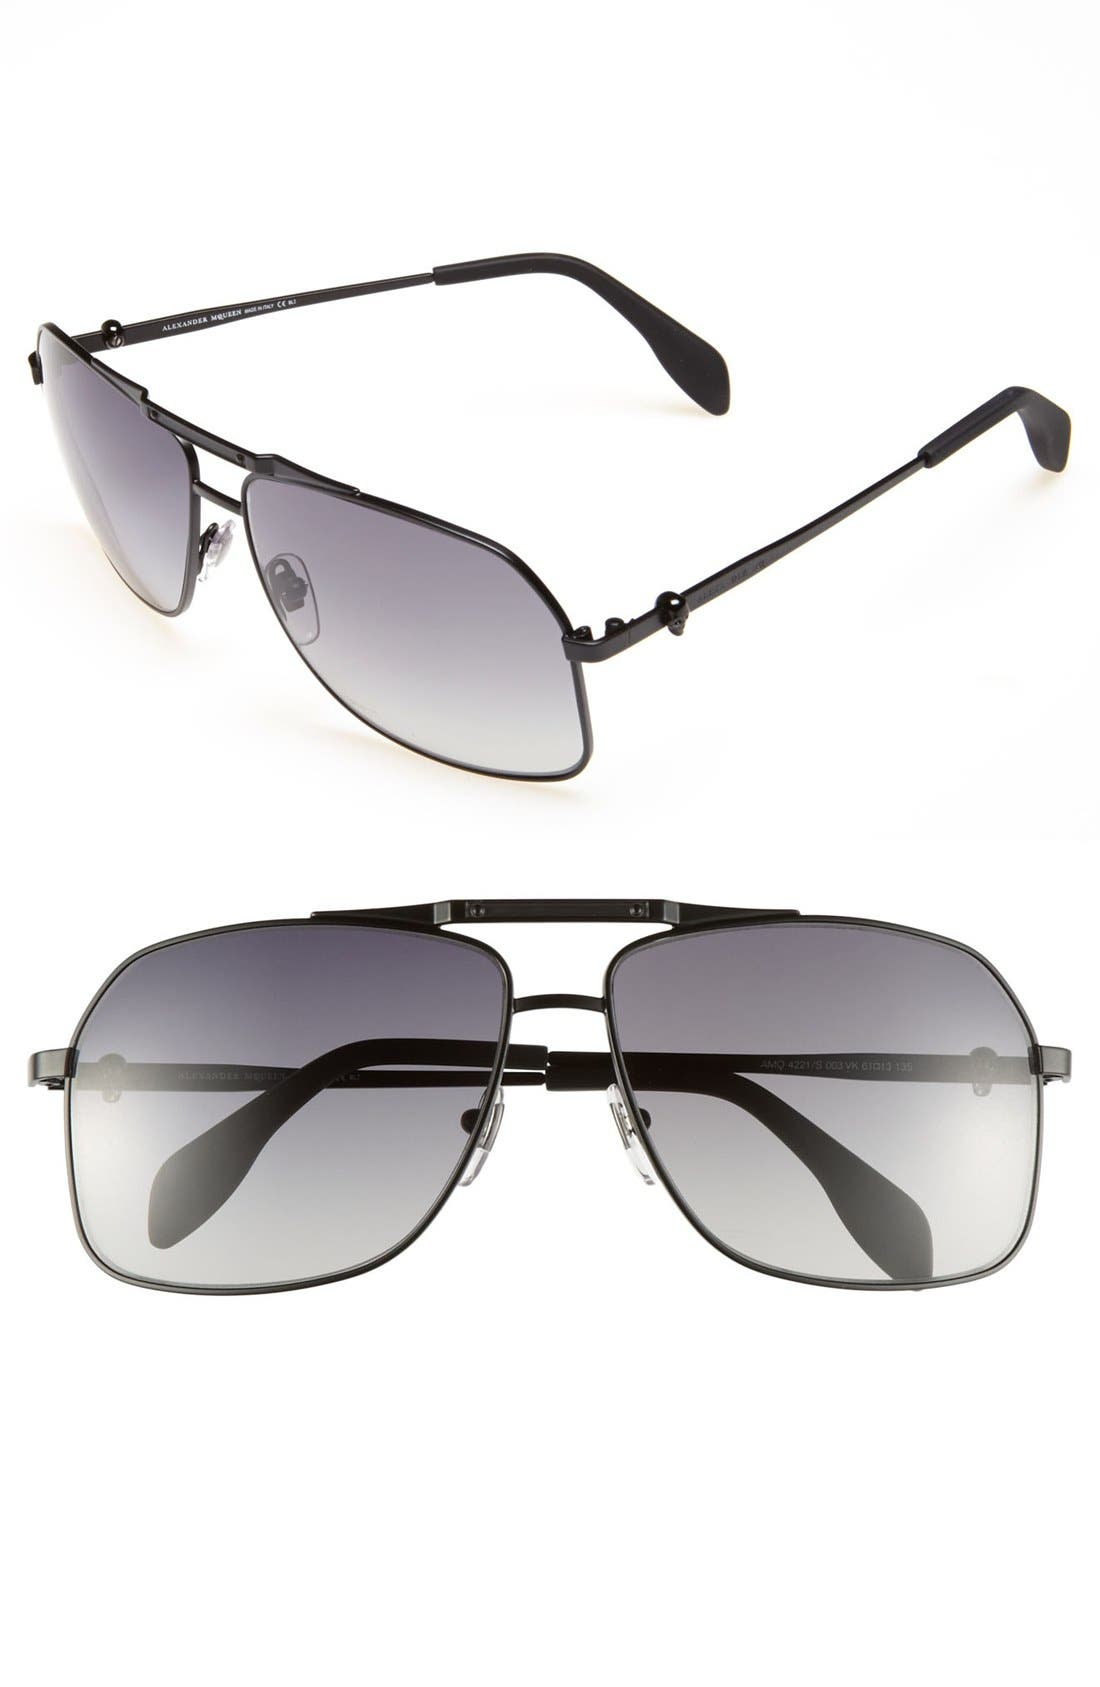 Alternate Image 1 Selected - Alexander McQueen 61mm Aviator Sunglasses (Online Only)